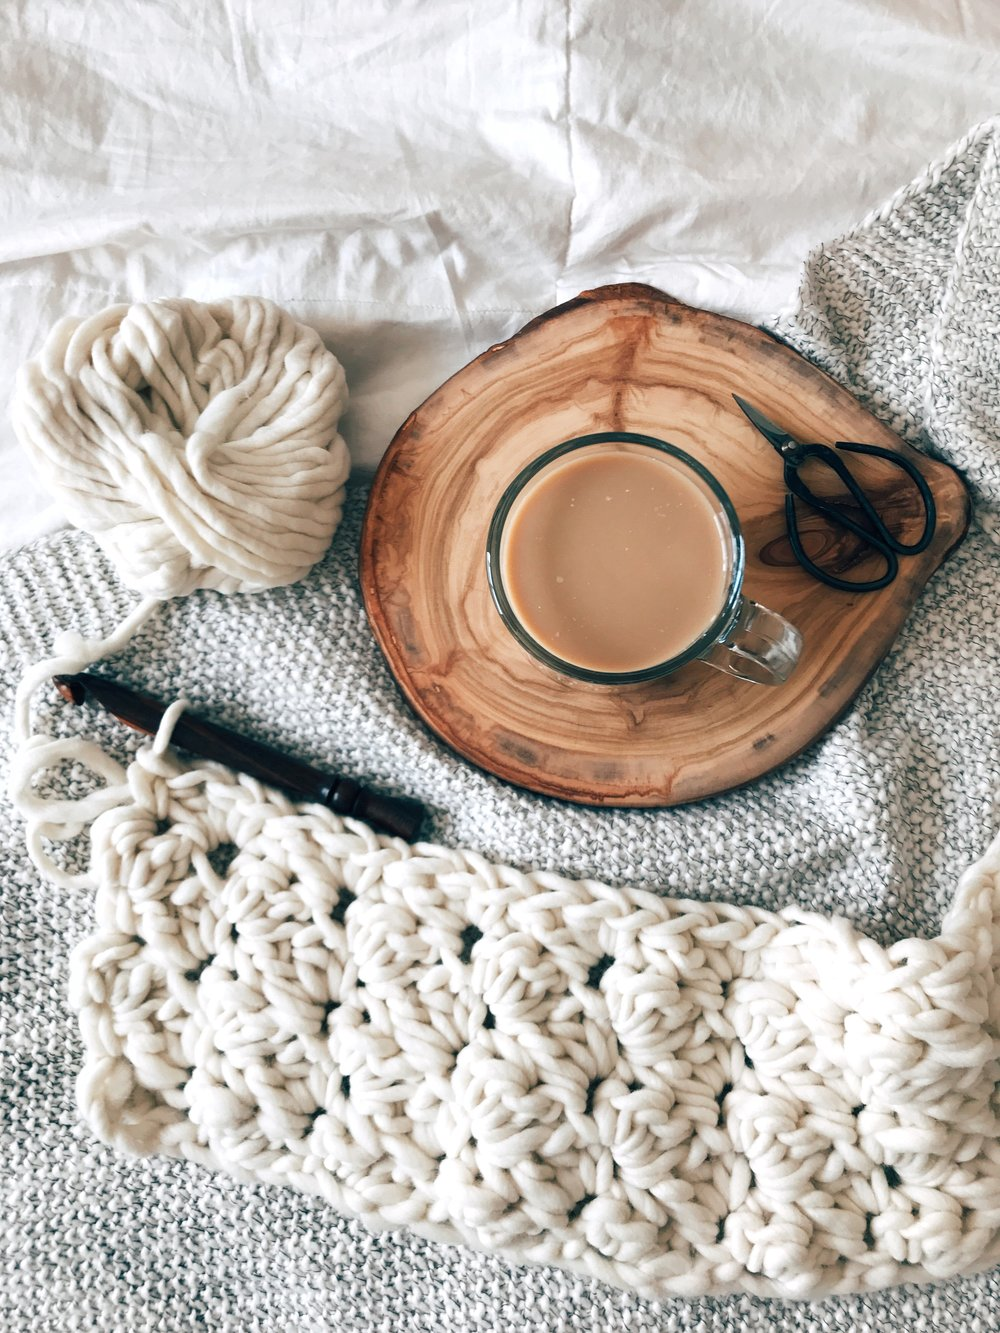 Bundle Up - Yarn, Coffee, & Slow Living